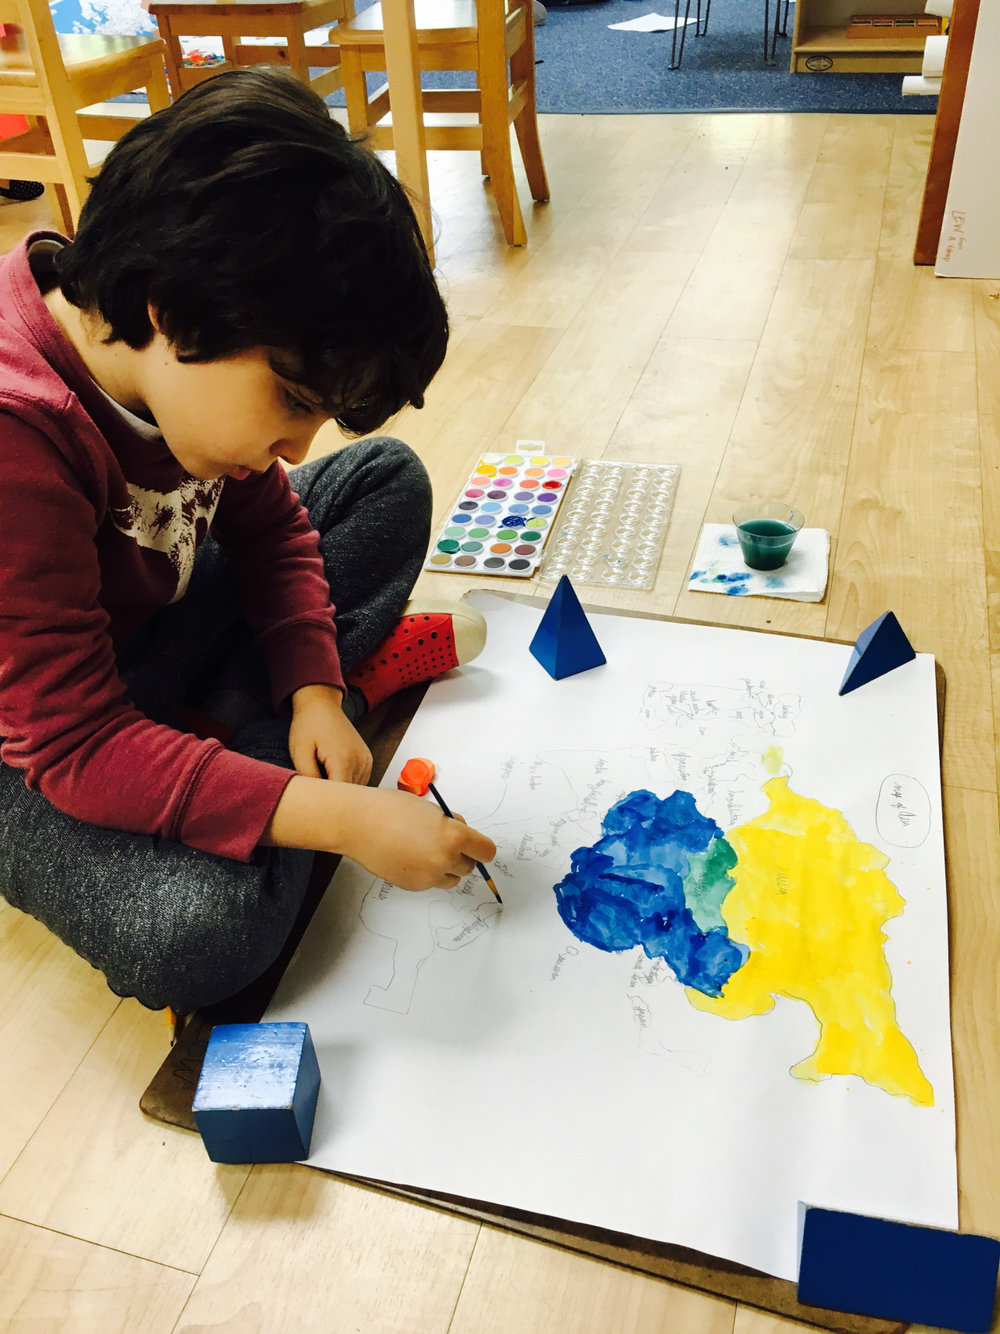 The Lower Elementary West students continued to conduct research about Asia and their related projects. One student made a wonderful watercolor painting of the entire continent.